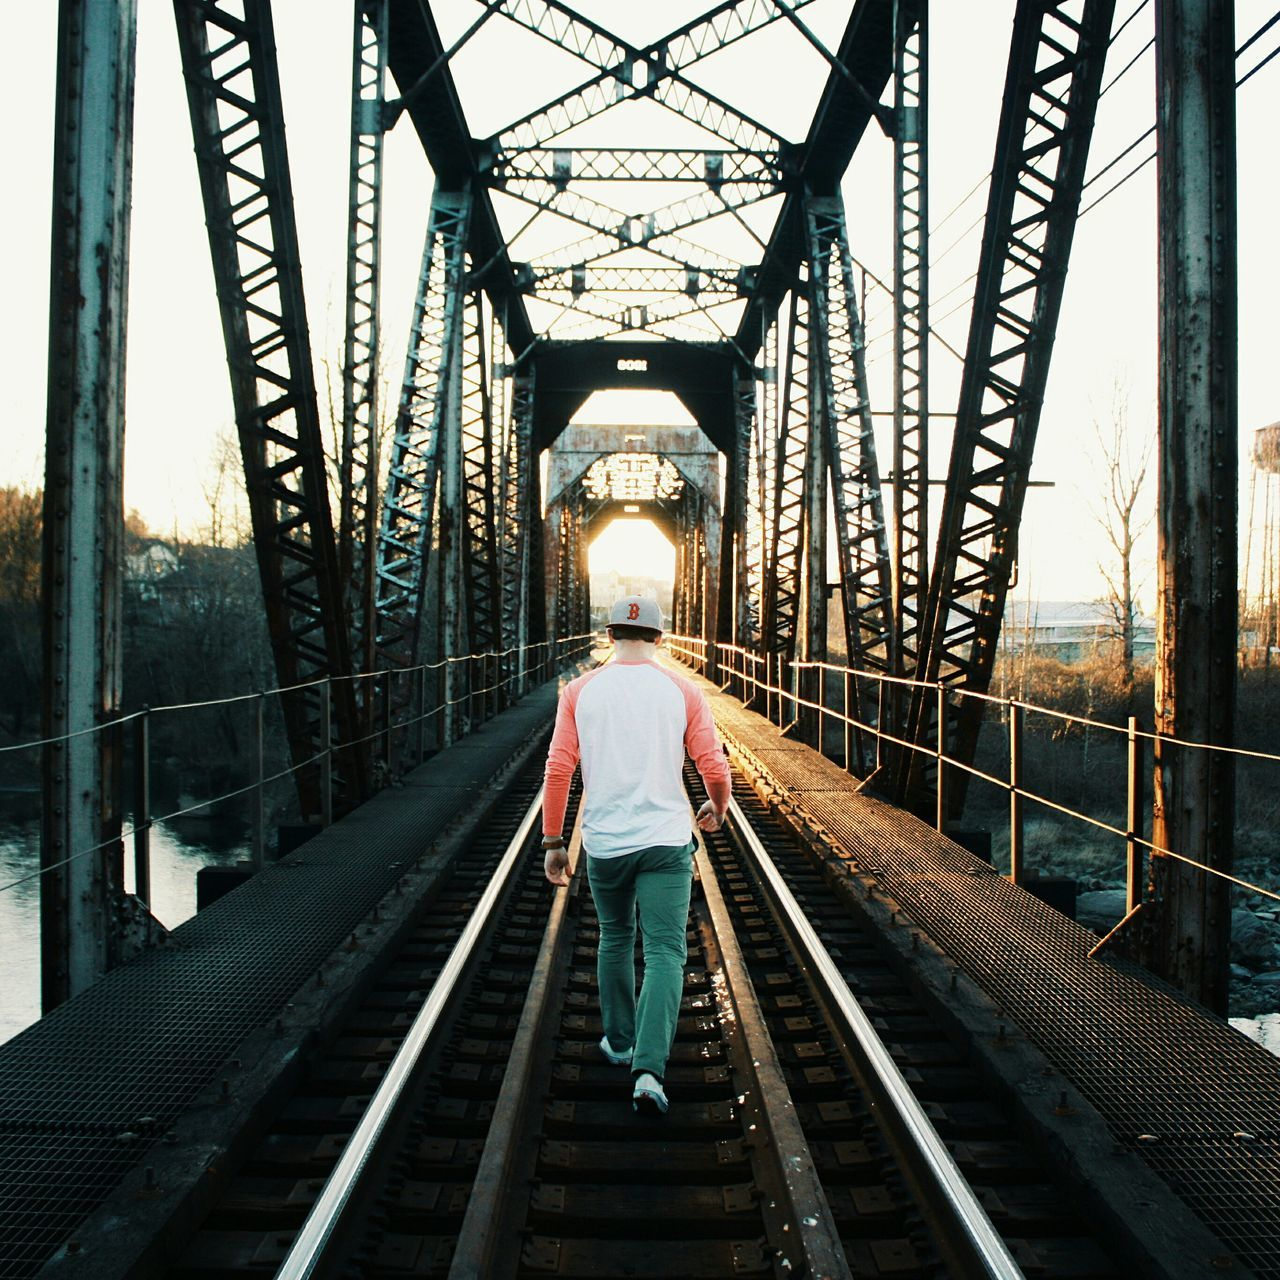 REAR VIEW OF MAN ON RAILWAY BRIDGE